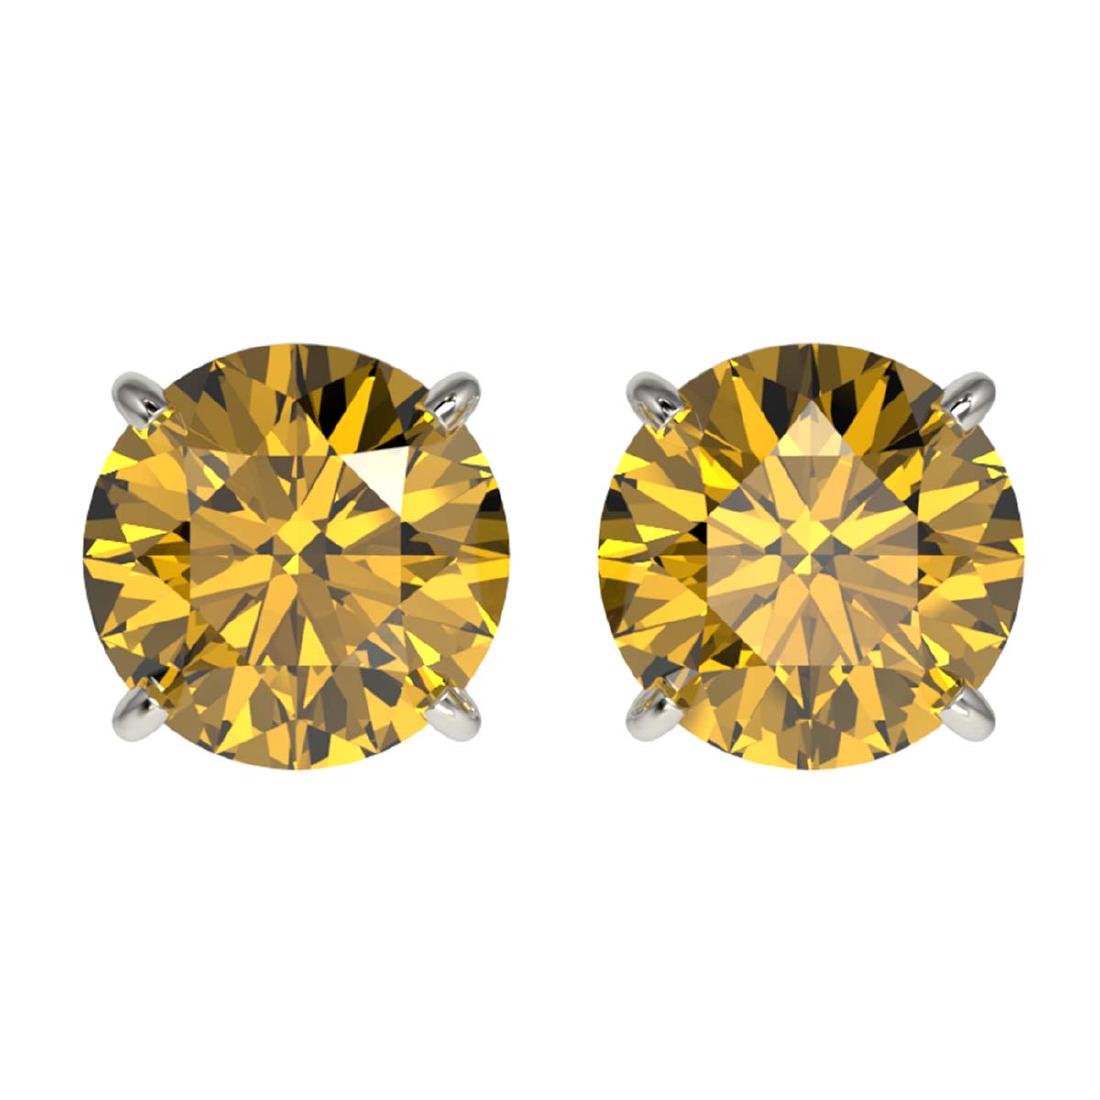 2 ctw Intense Yellow Diamond Stud Earrings 10K White